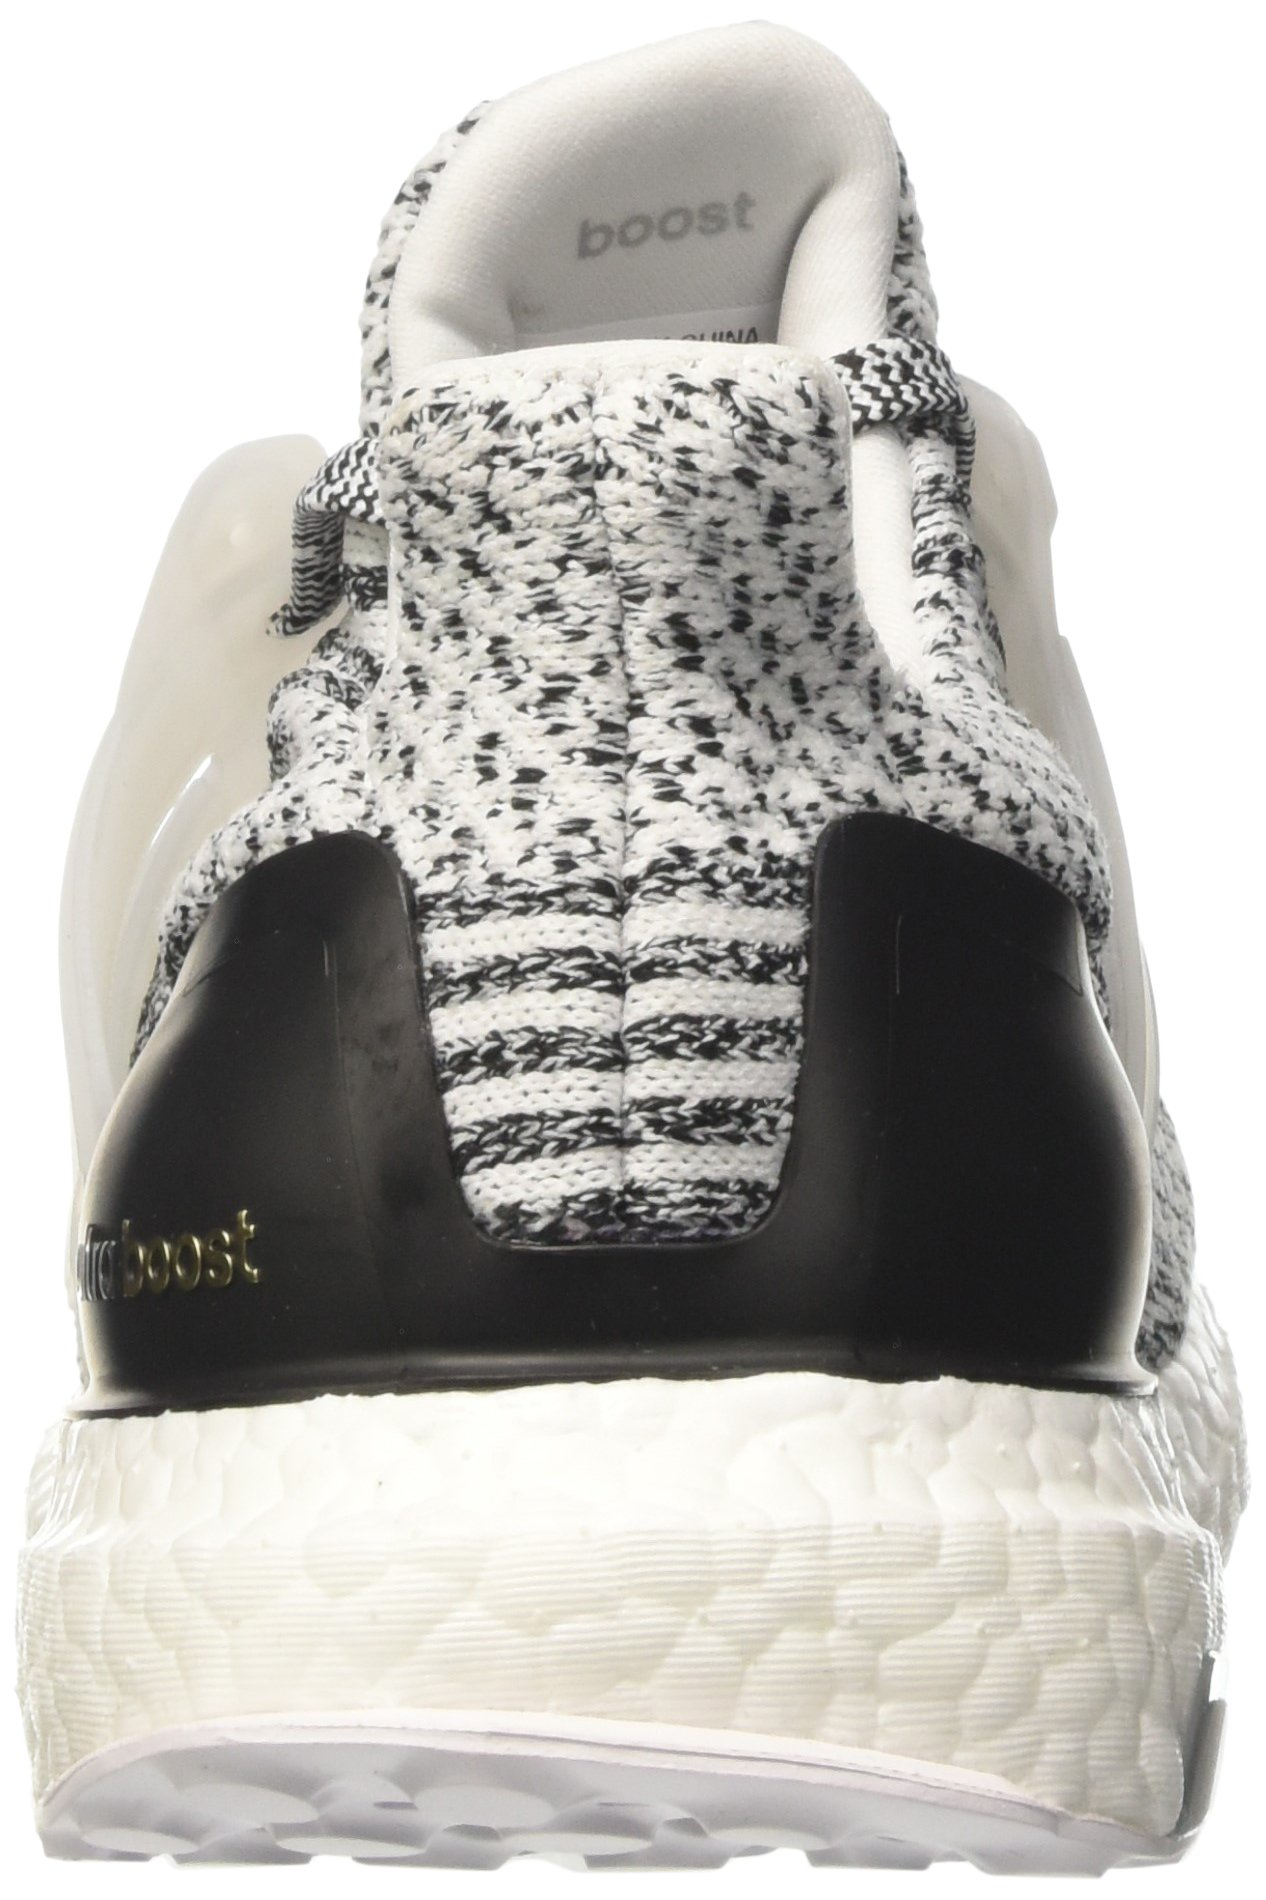 71CwaRIdCVL - adidas Men's Ultraboost Running Shoes